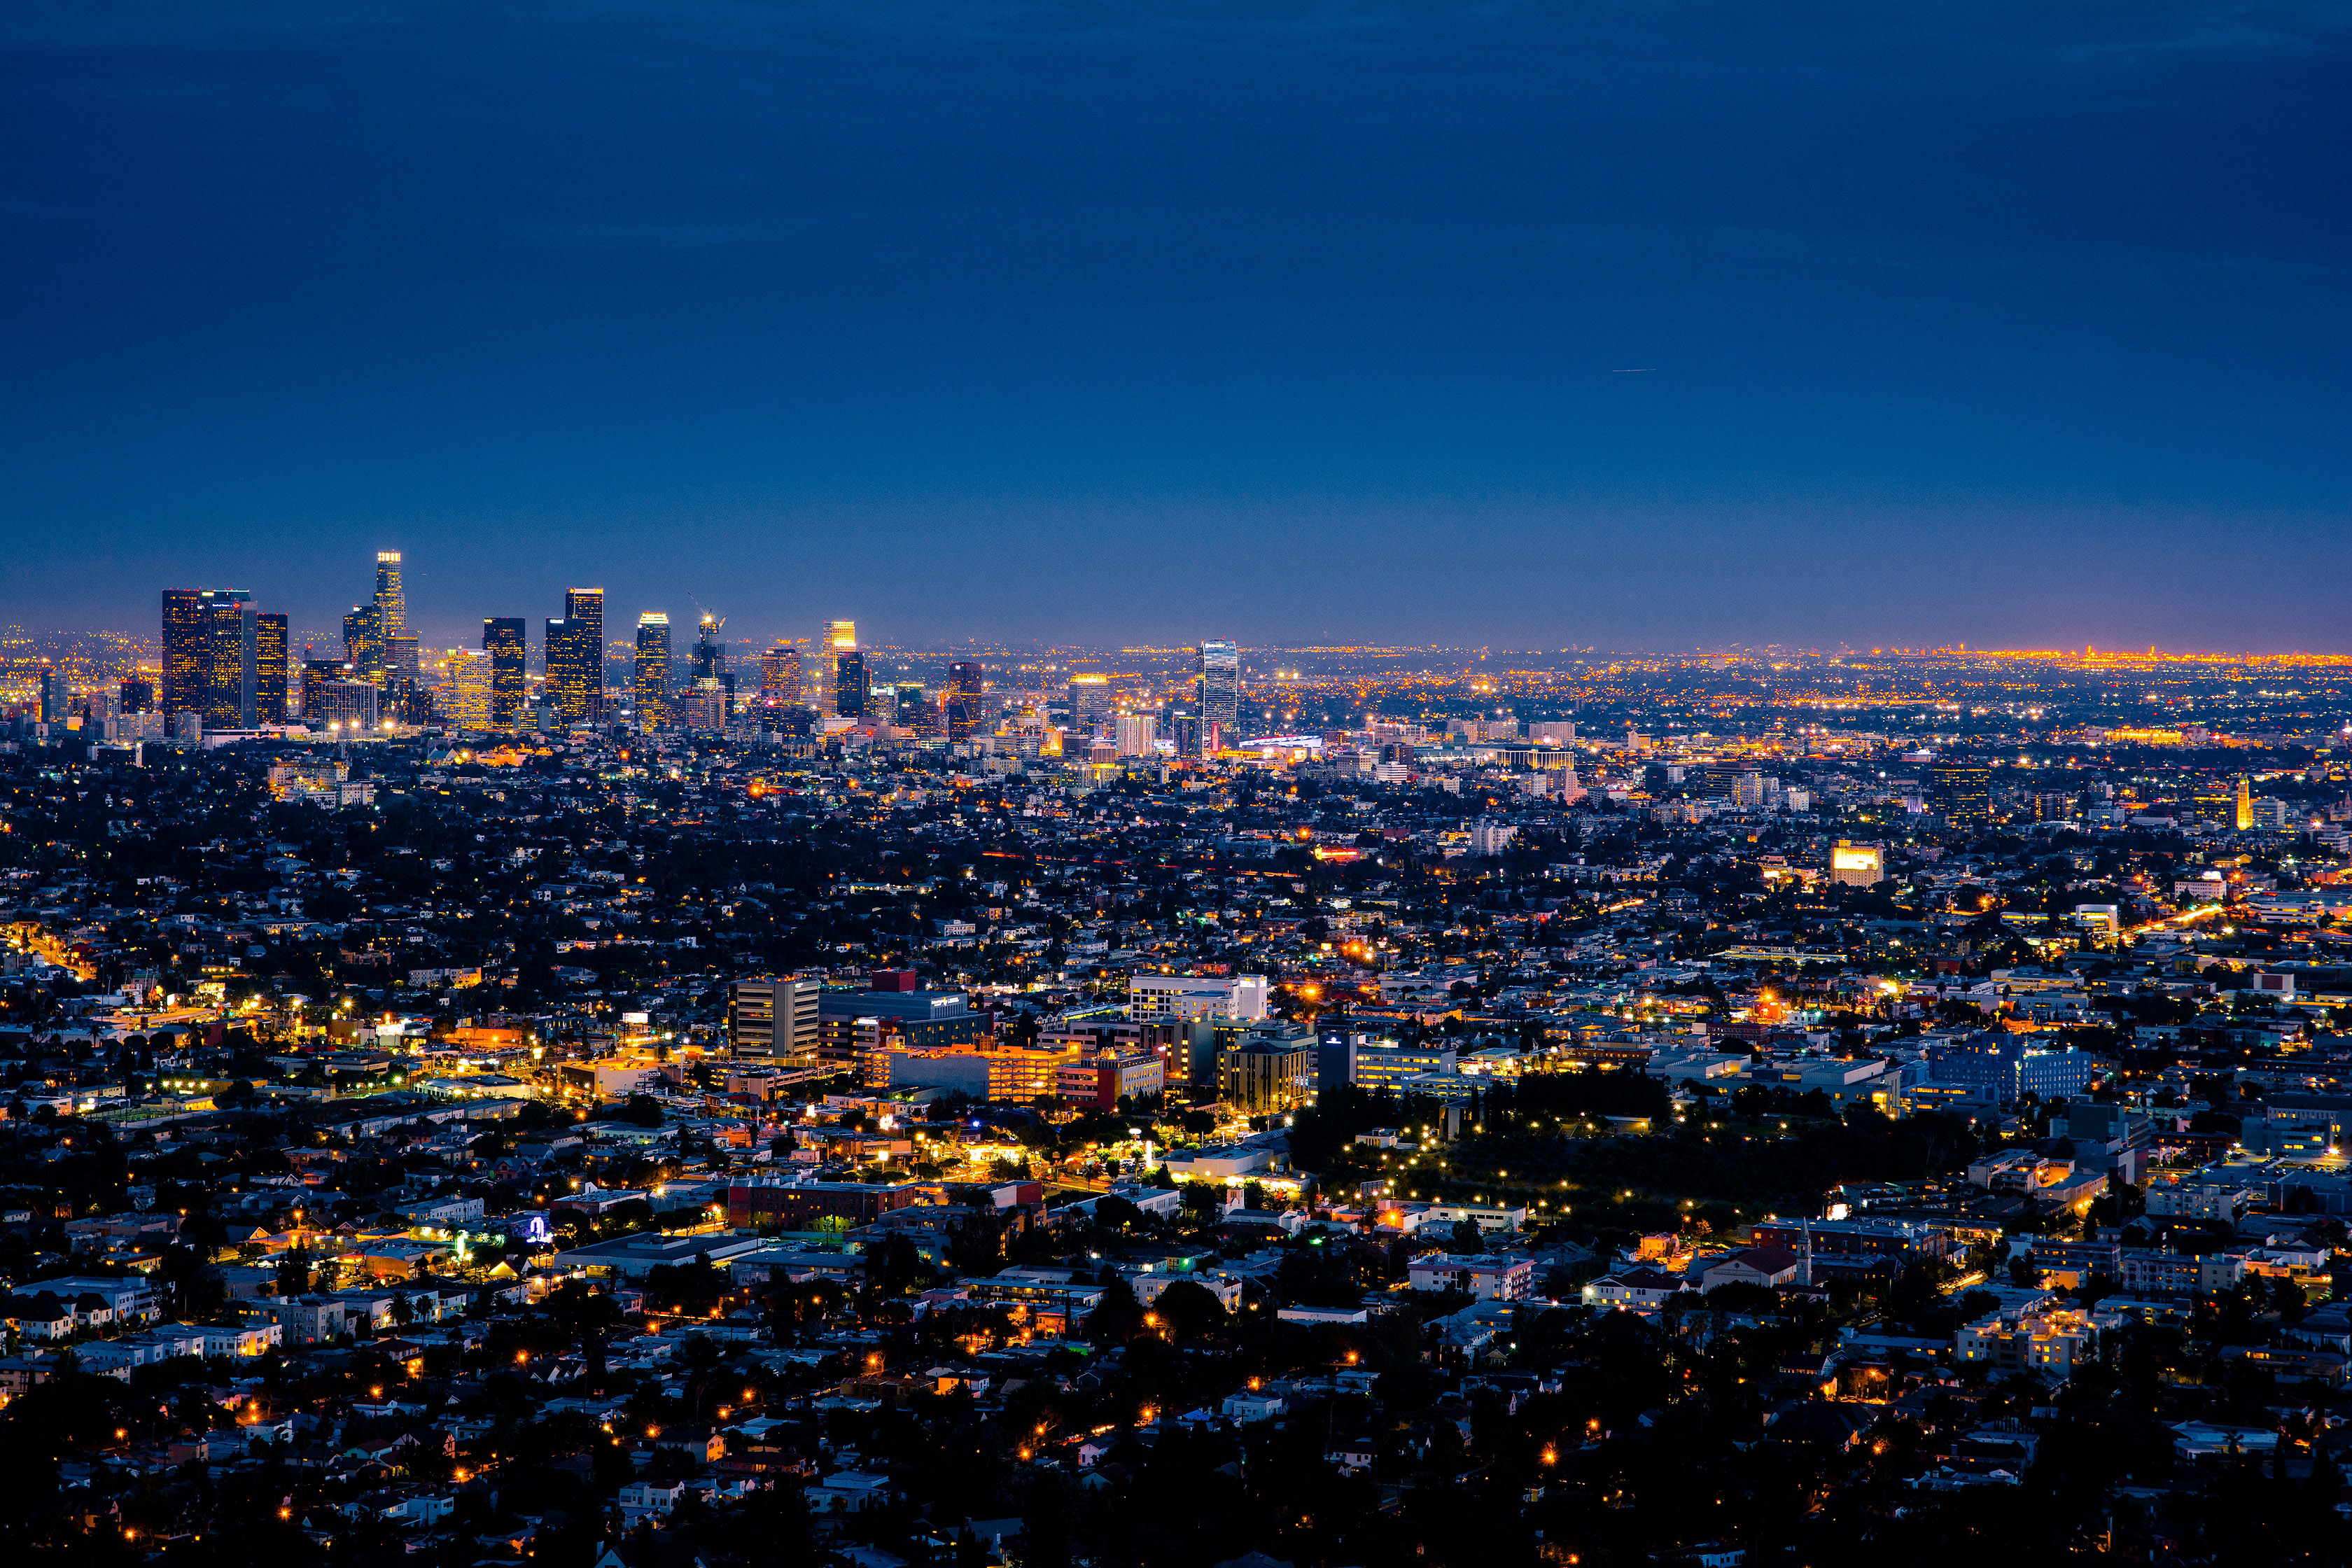 Free Stock Photo Of Night Lights In Los Angeles California And Cityscape Public Domain Photo